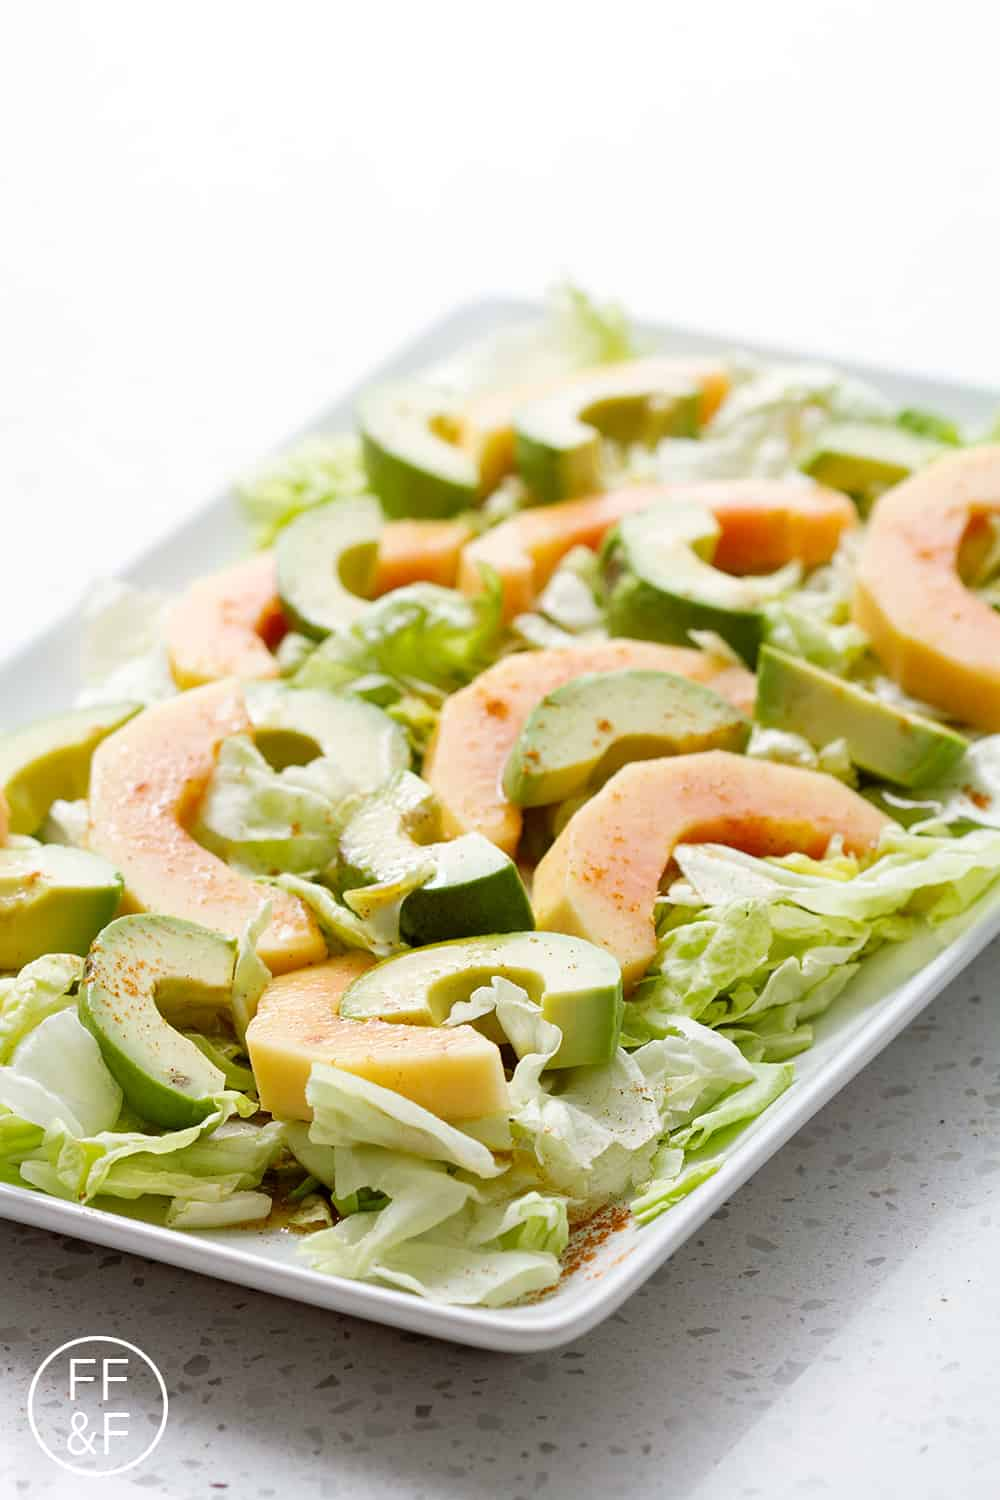 Adding a few spices to a simple salad dressing, makes this the most flavorful salad ever!